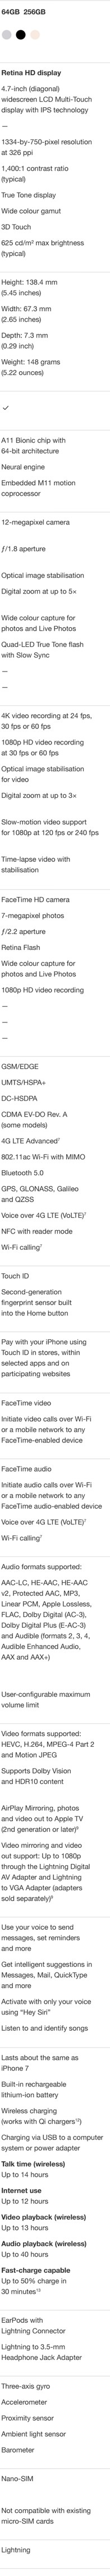 iPhone 8 Specifications